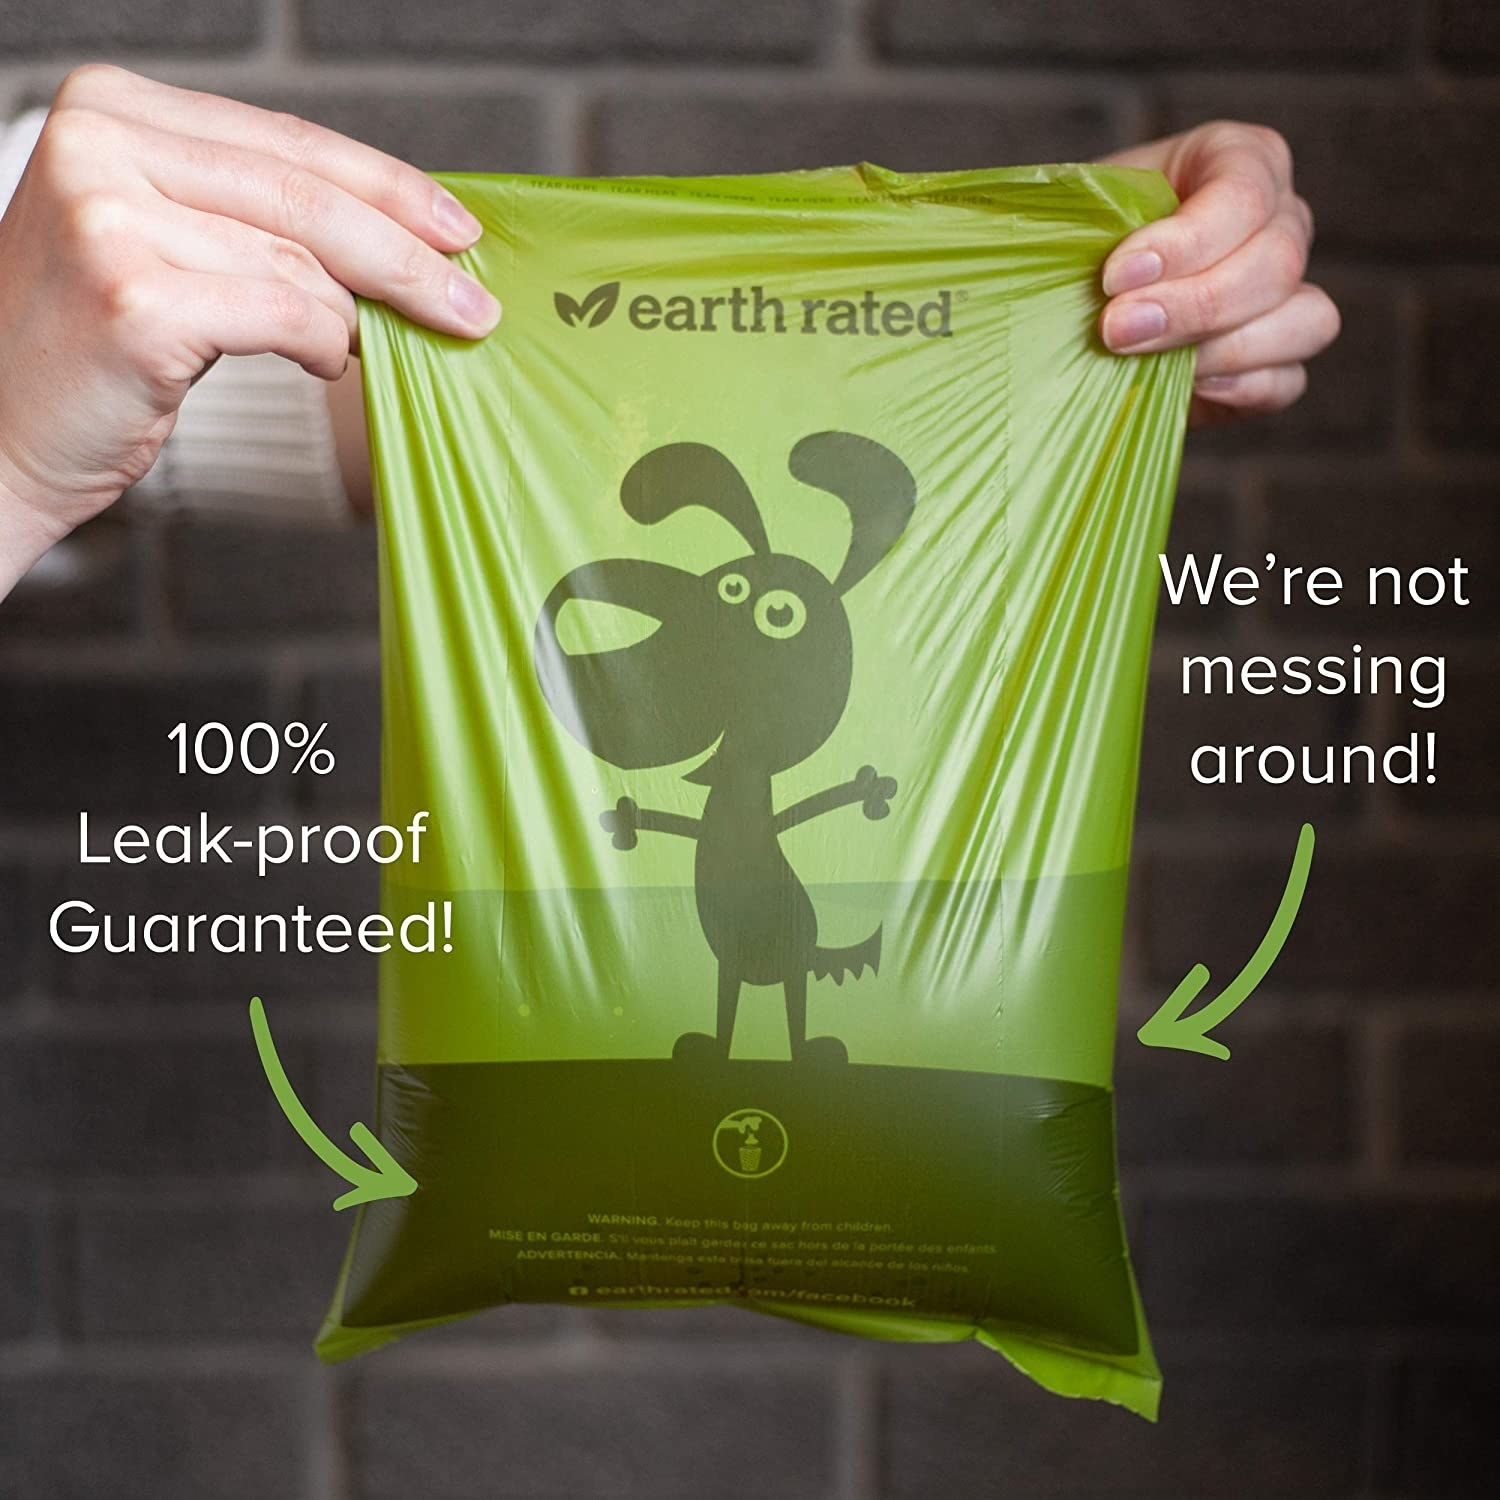 The poop bag with text that they're 100% leak-proof